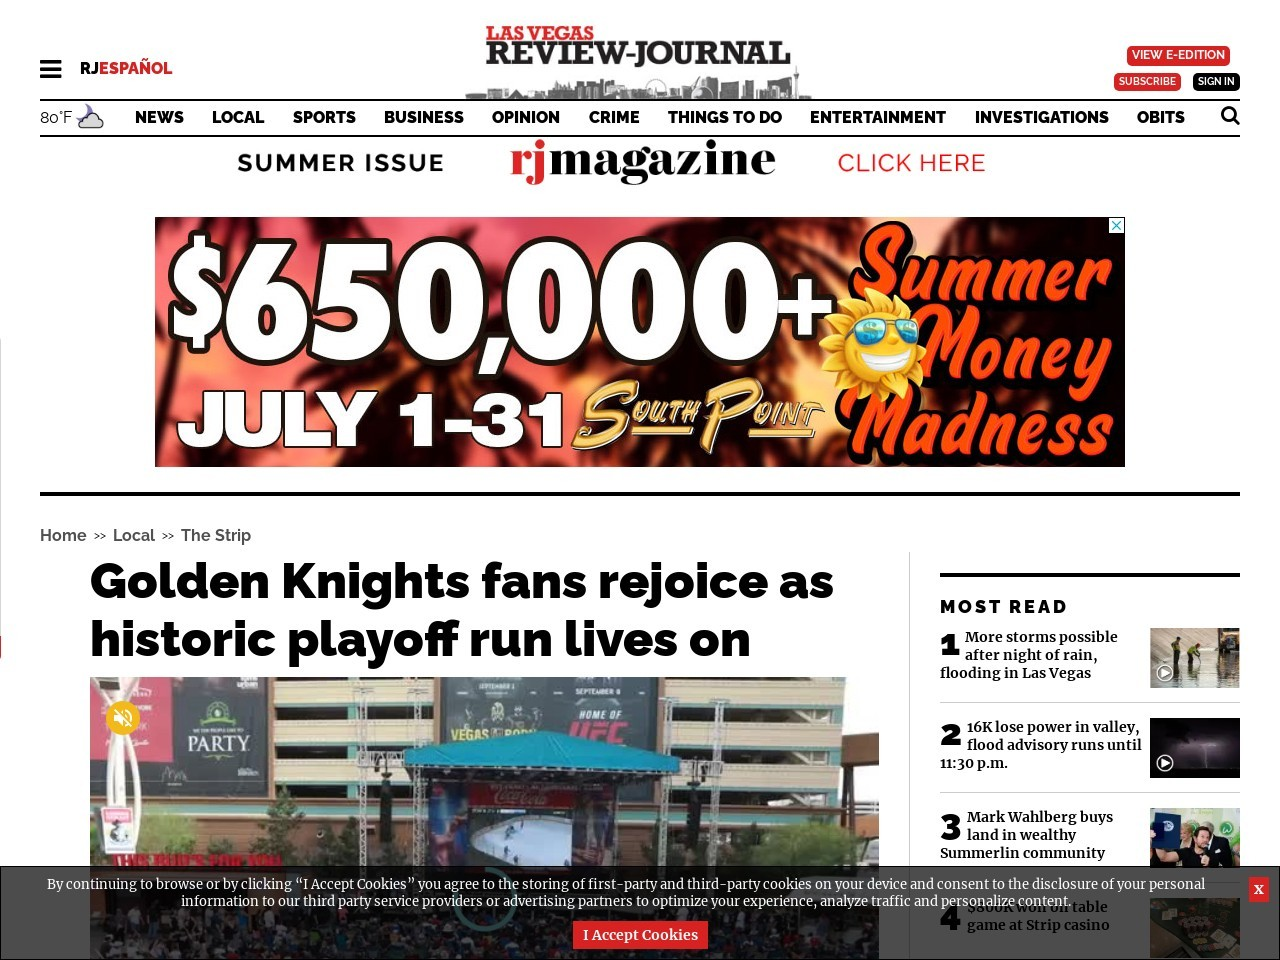 Golden Knights fans rejoice as historic playoff run lives on